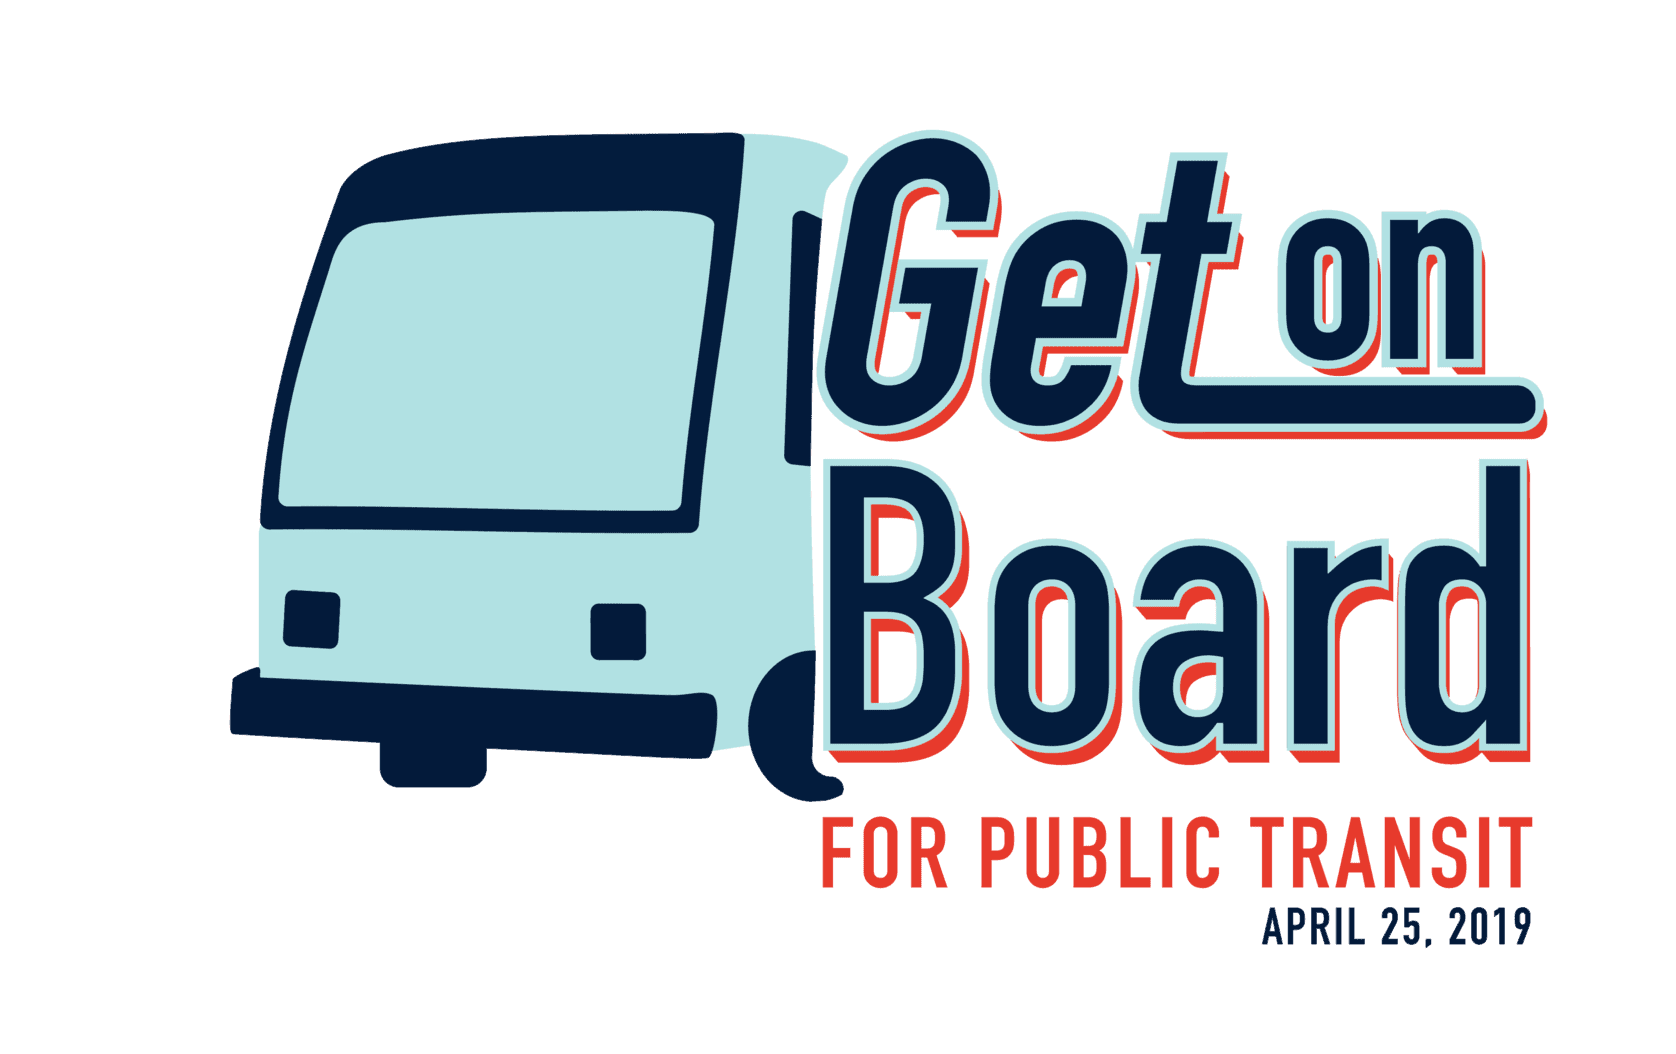 Get on Board Logo Bus